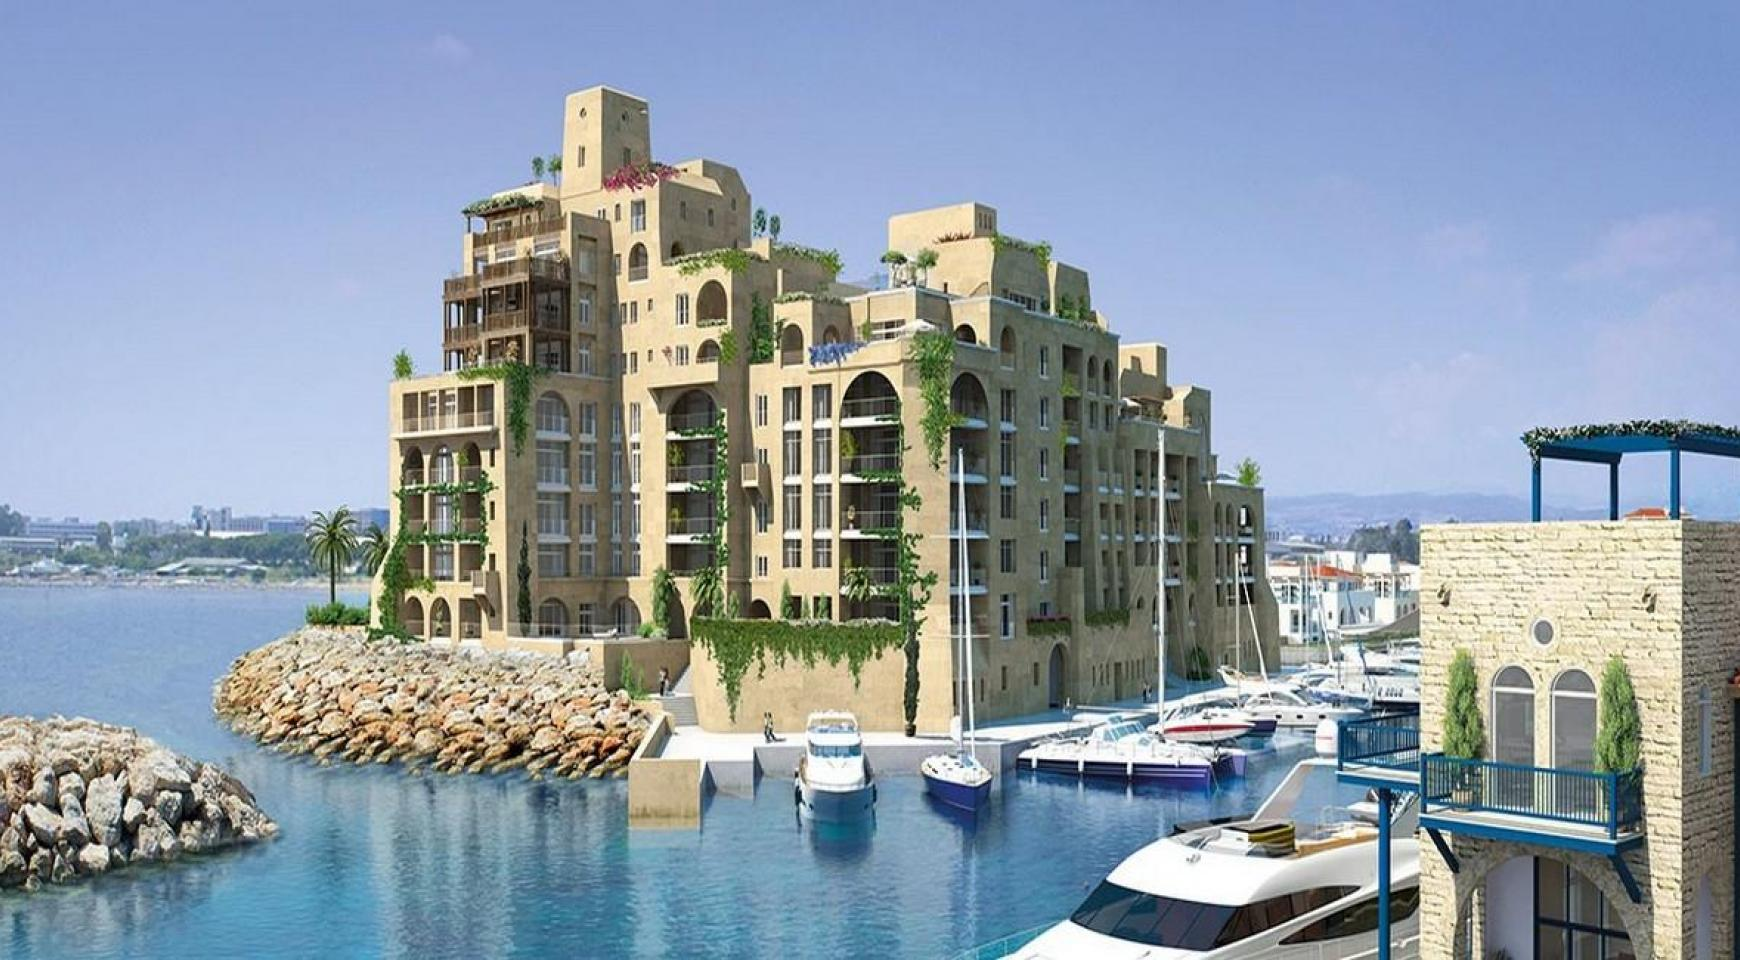 3 Bedroom Apartment in an Exclusive Project on the Sea - 1